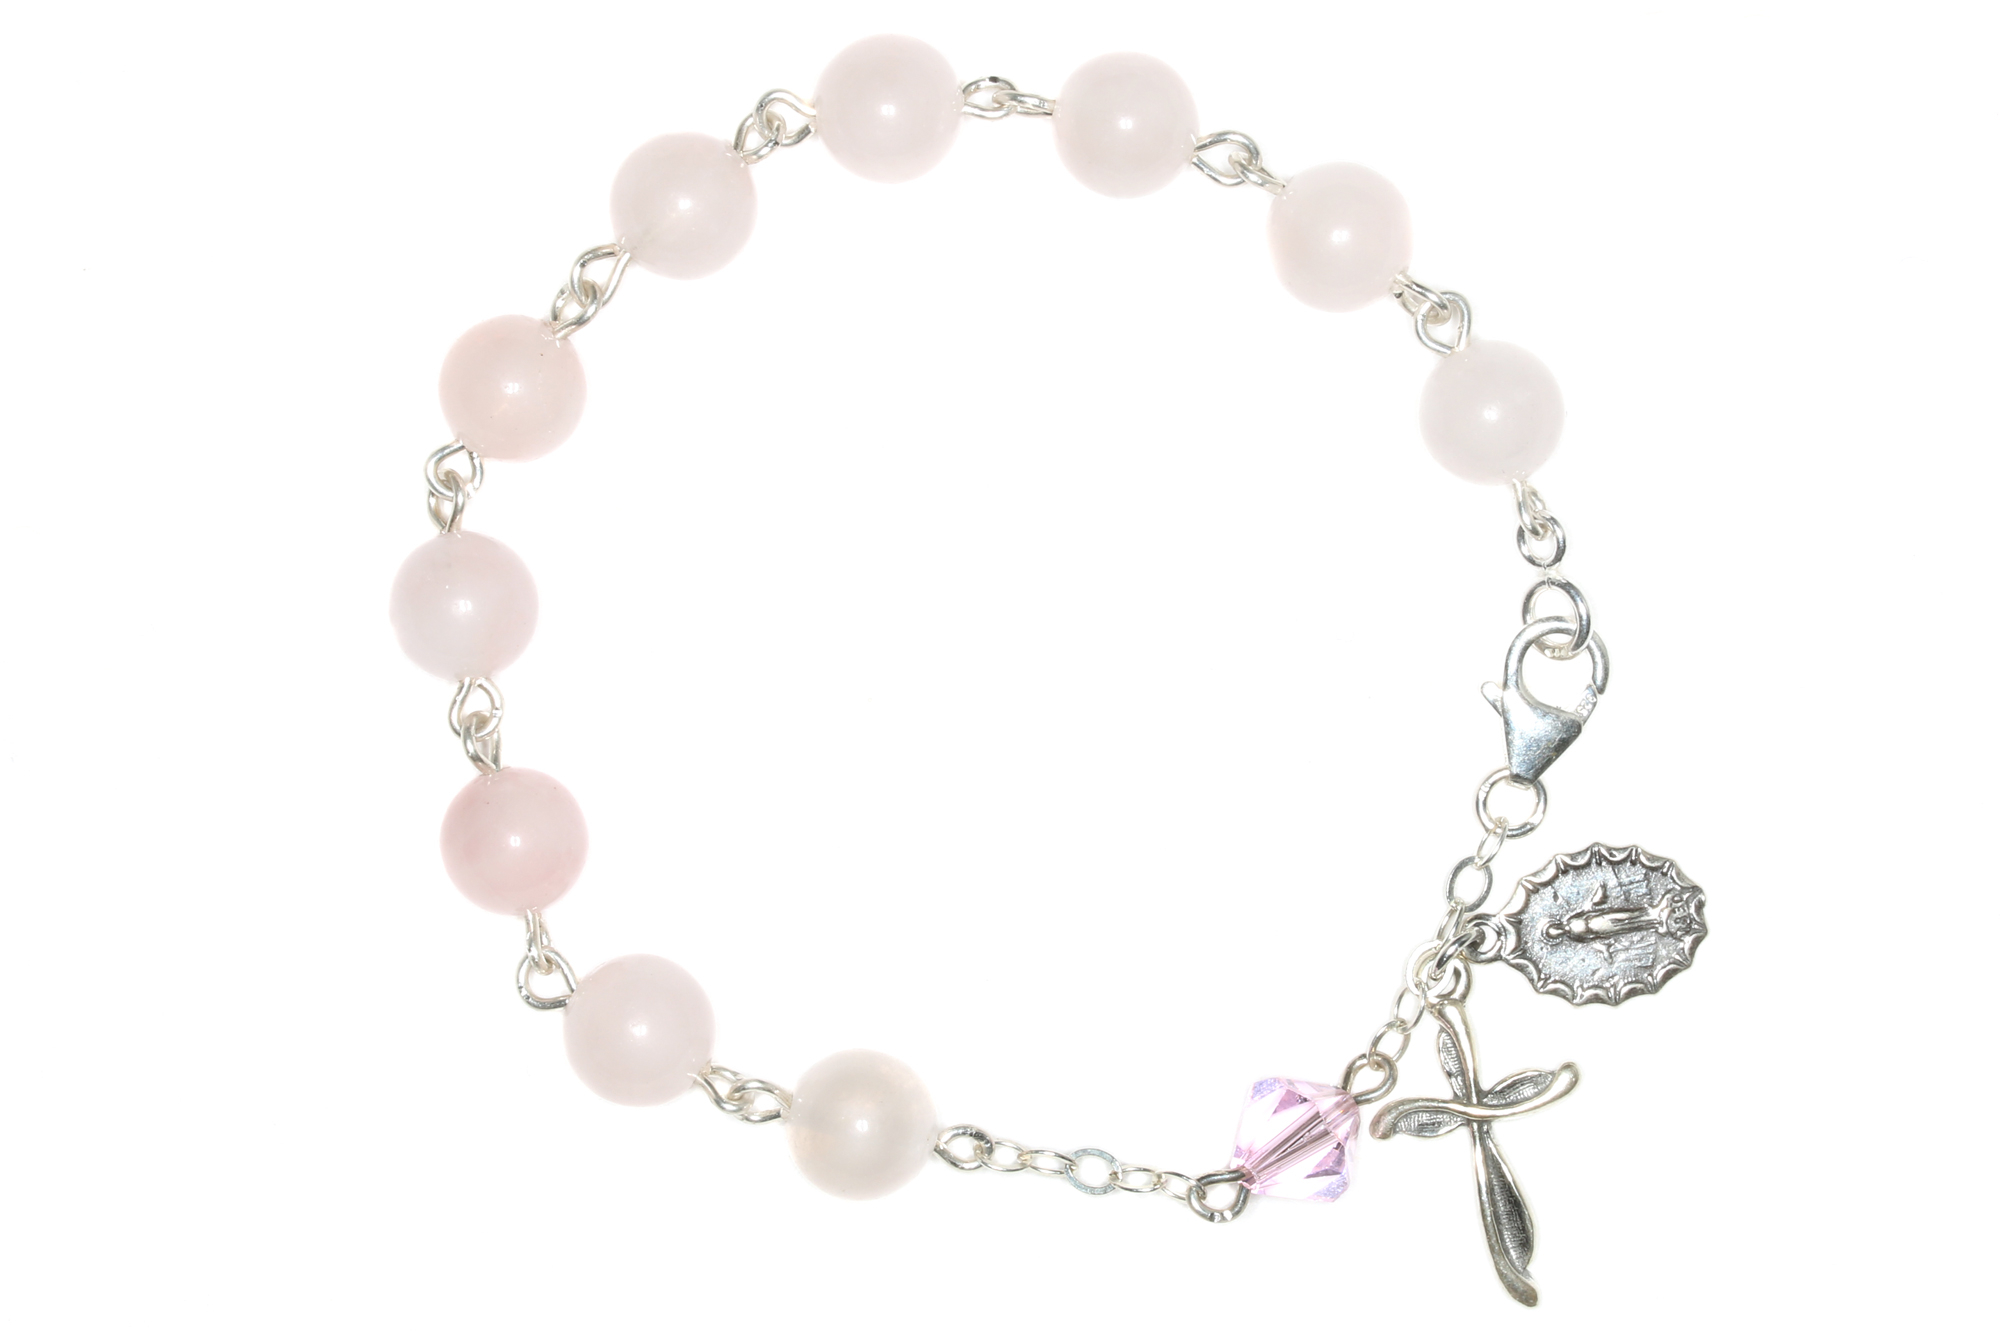 2000x1333 Rose Quartz Gemstone Rosary Bracelet Rose Quartz Rosary